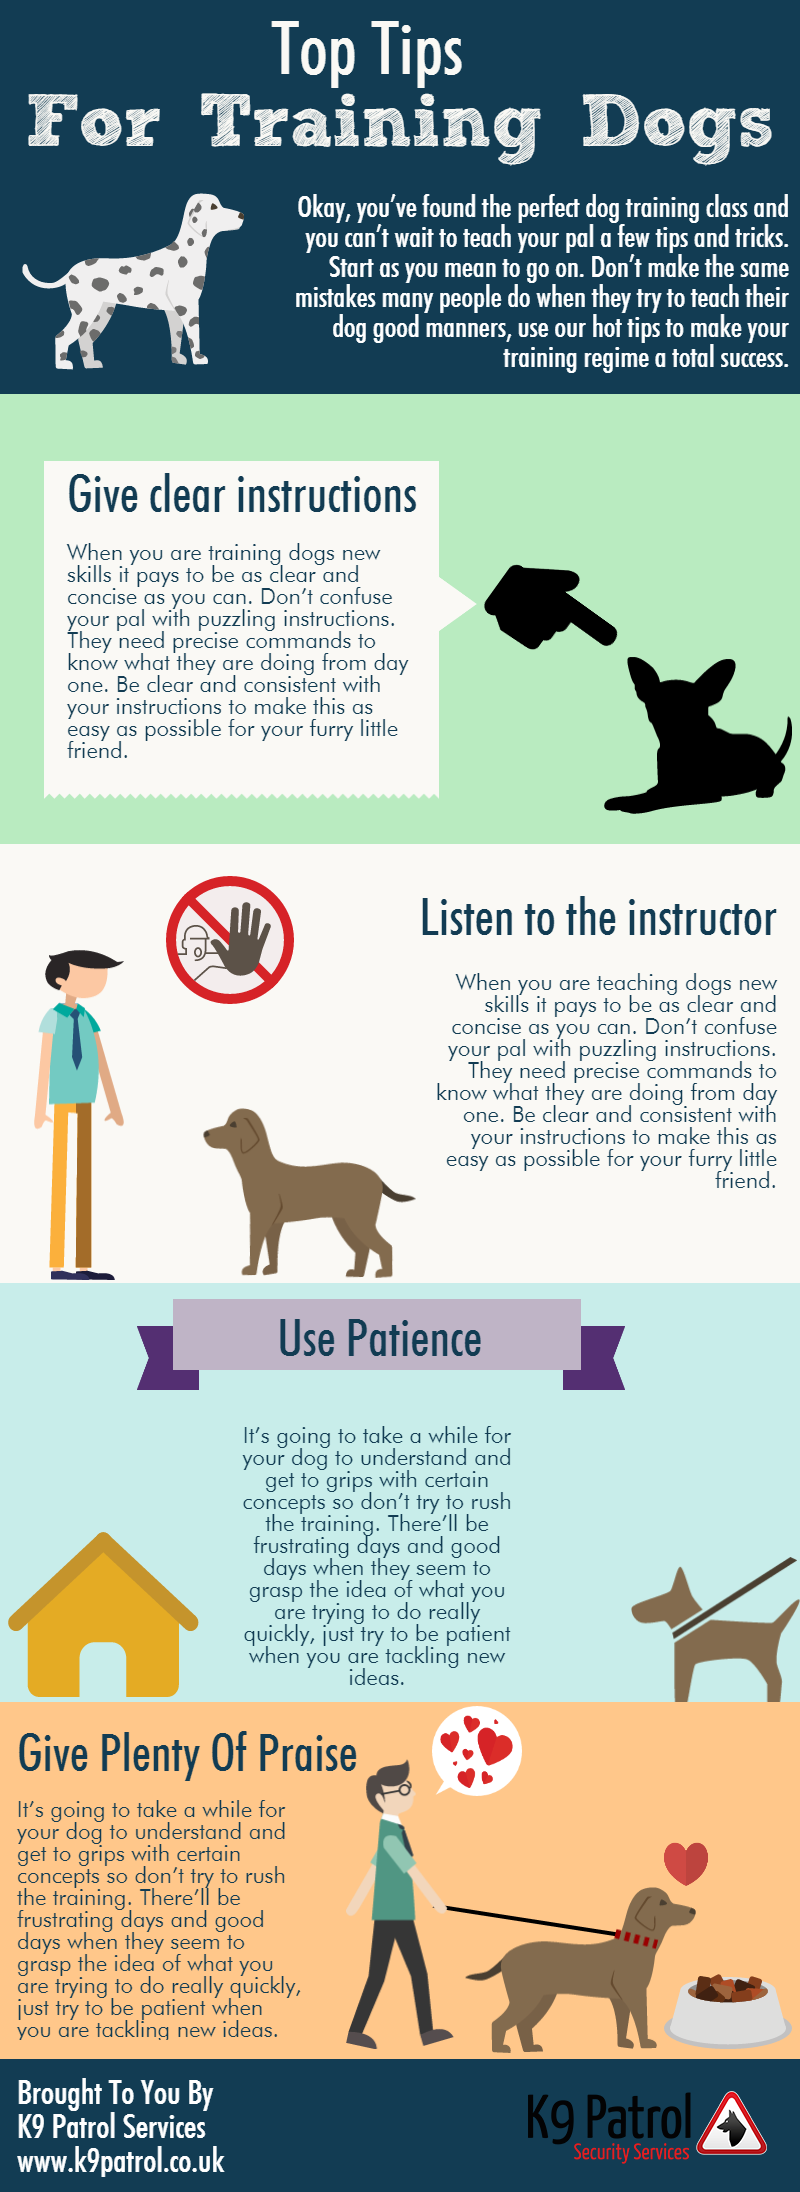 Top Tips For Training Dogs